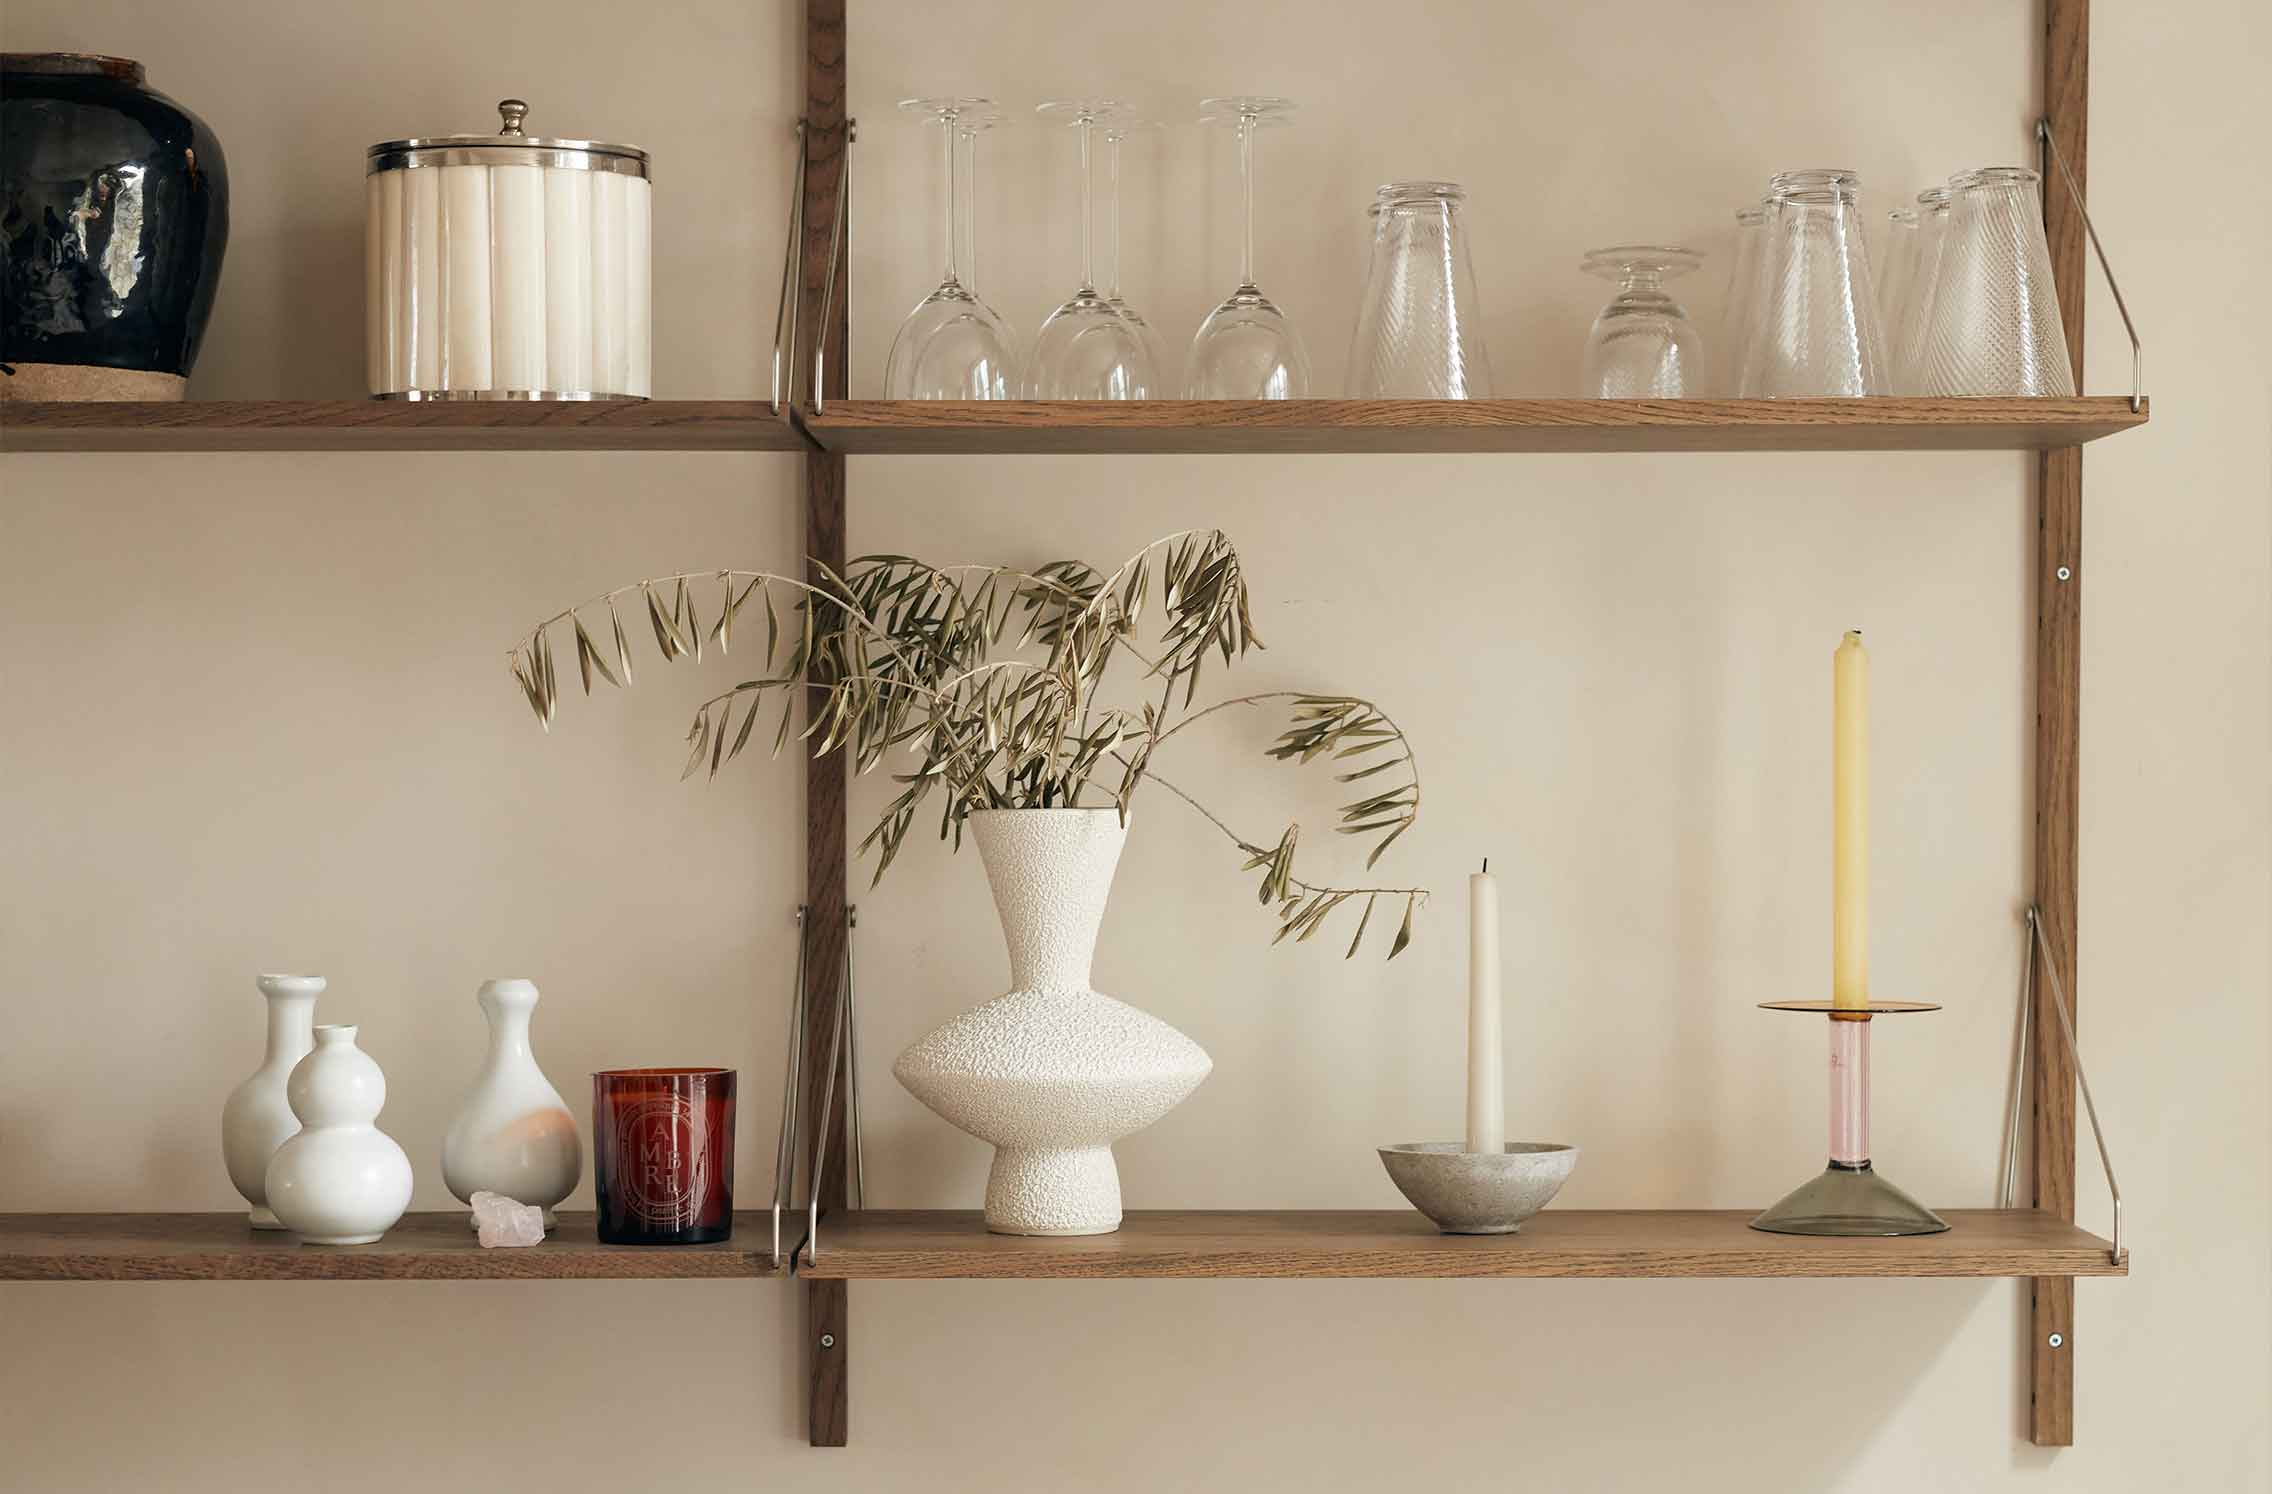 Ornaments and glassware arranged on wooden shelves